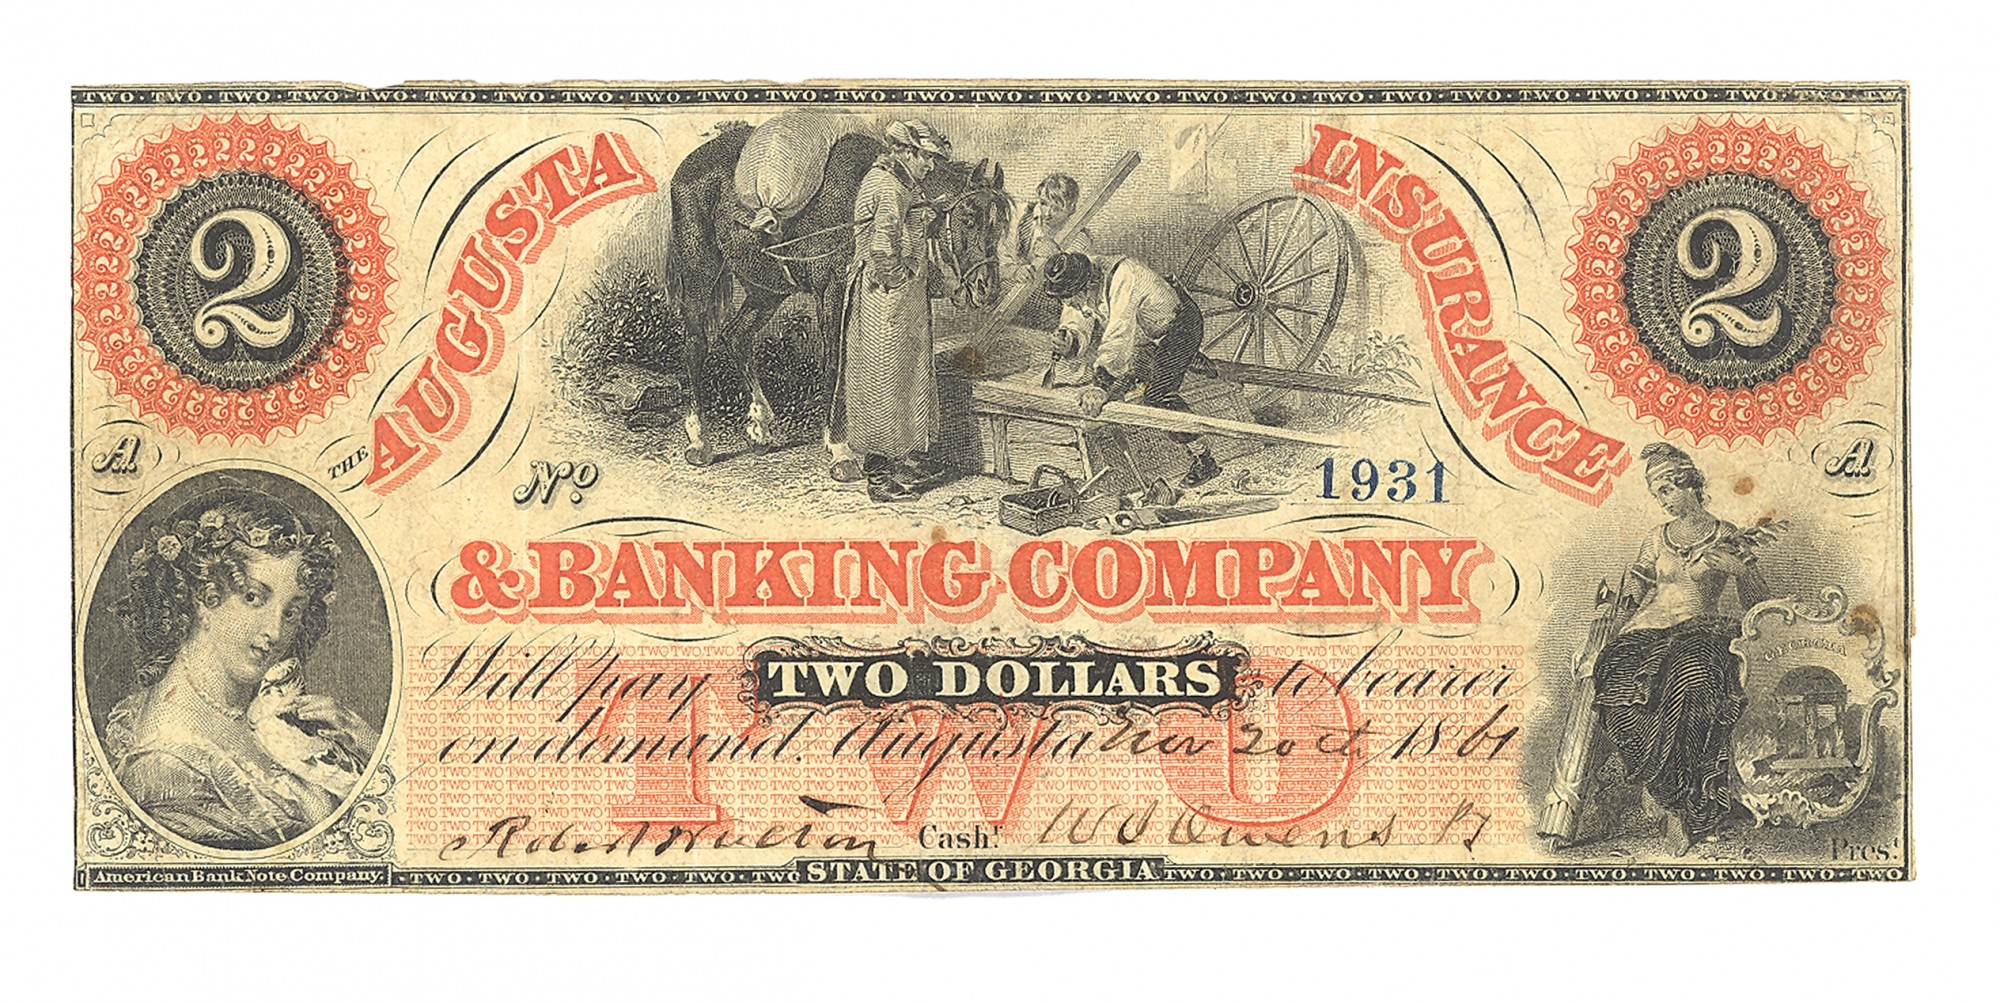 AUGUSTA INSURANCE & BANKING CO., AUGUSTA, GEORGIA, $2 NOTE